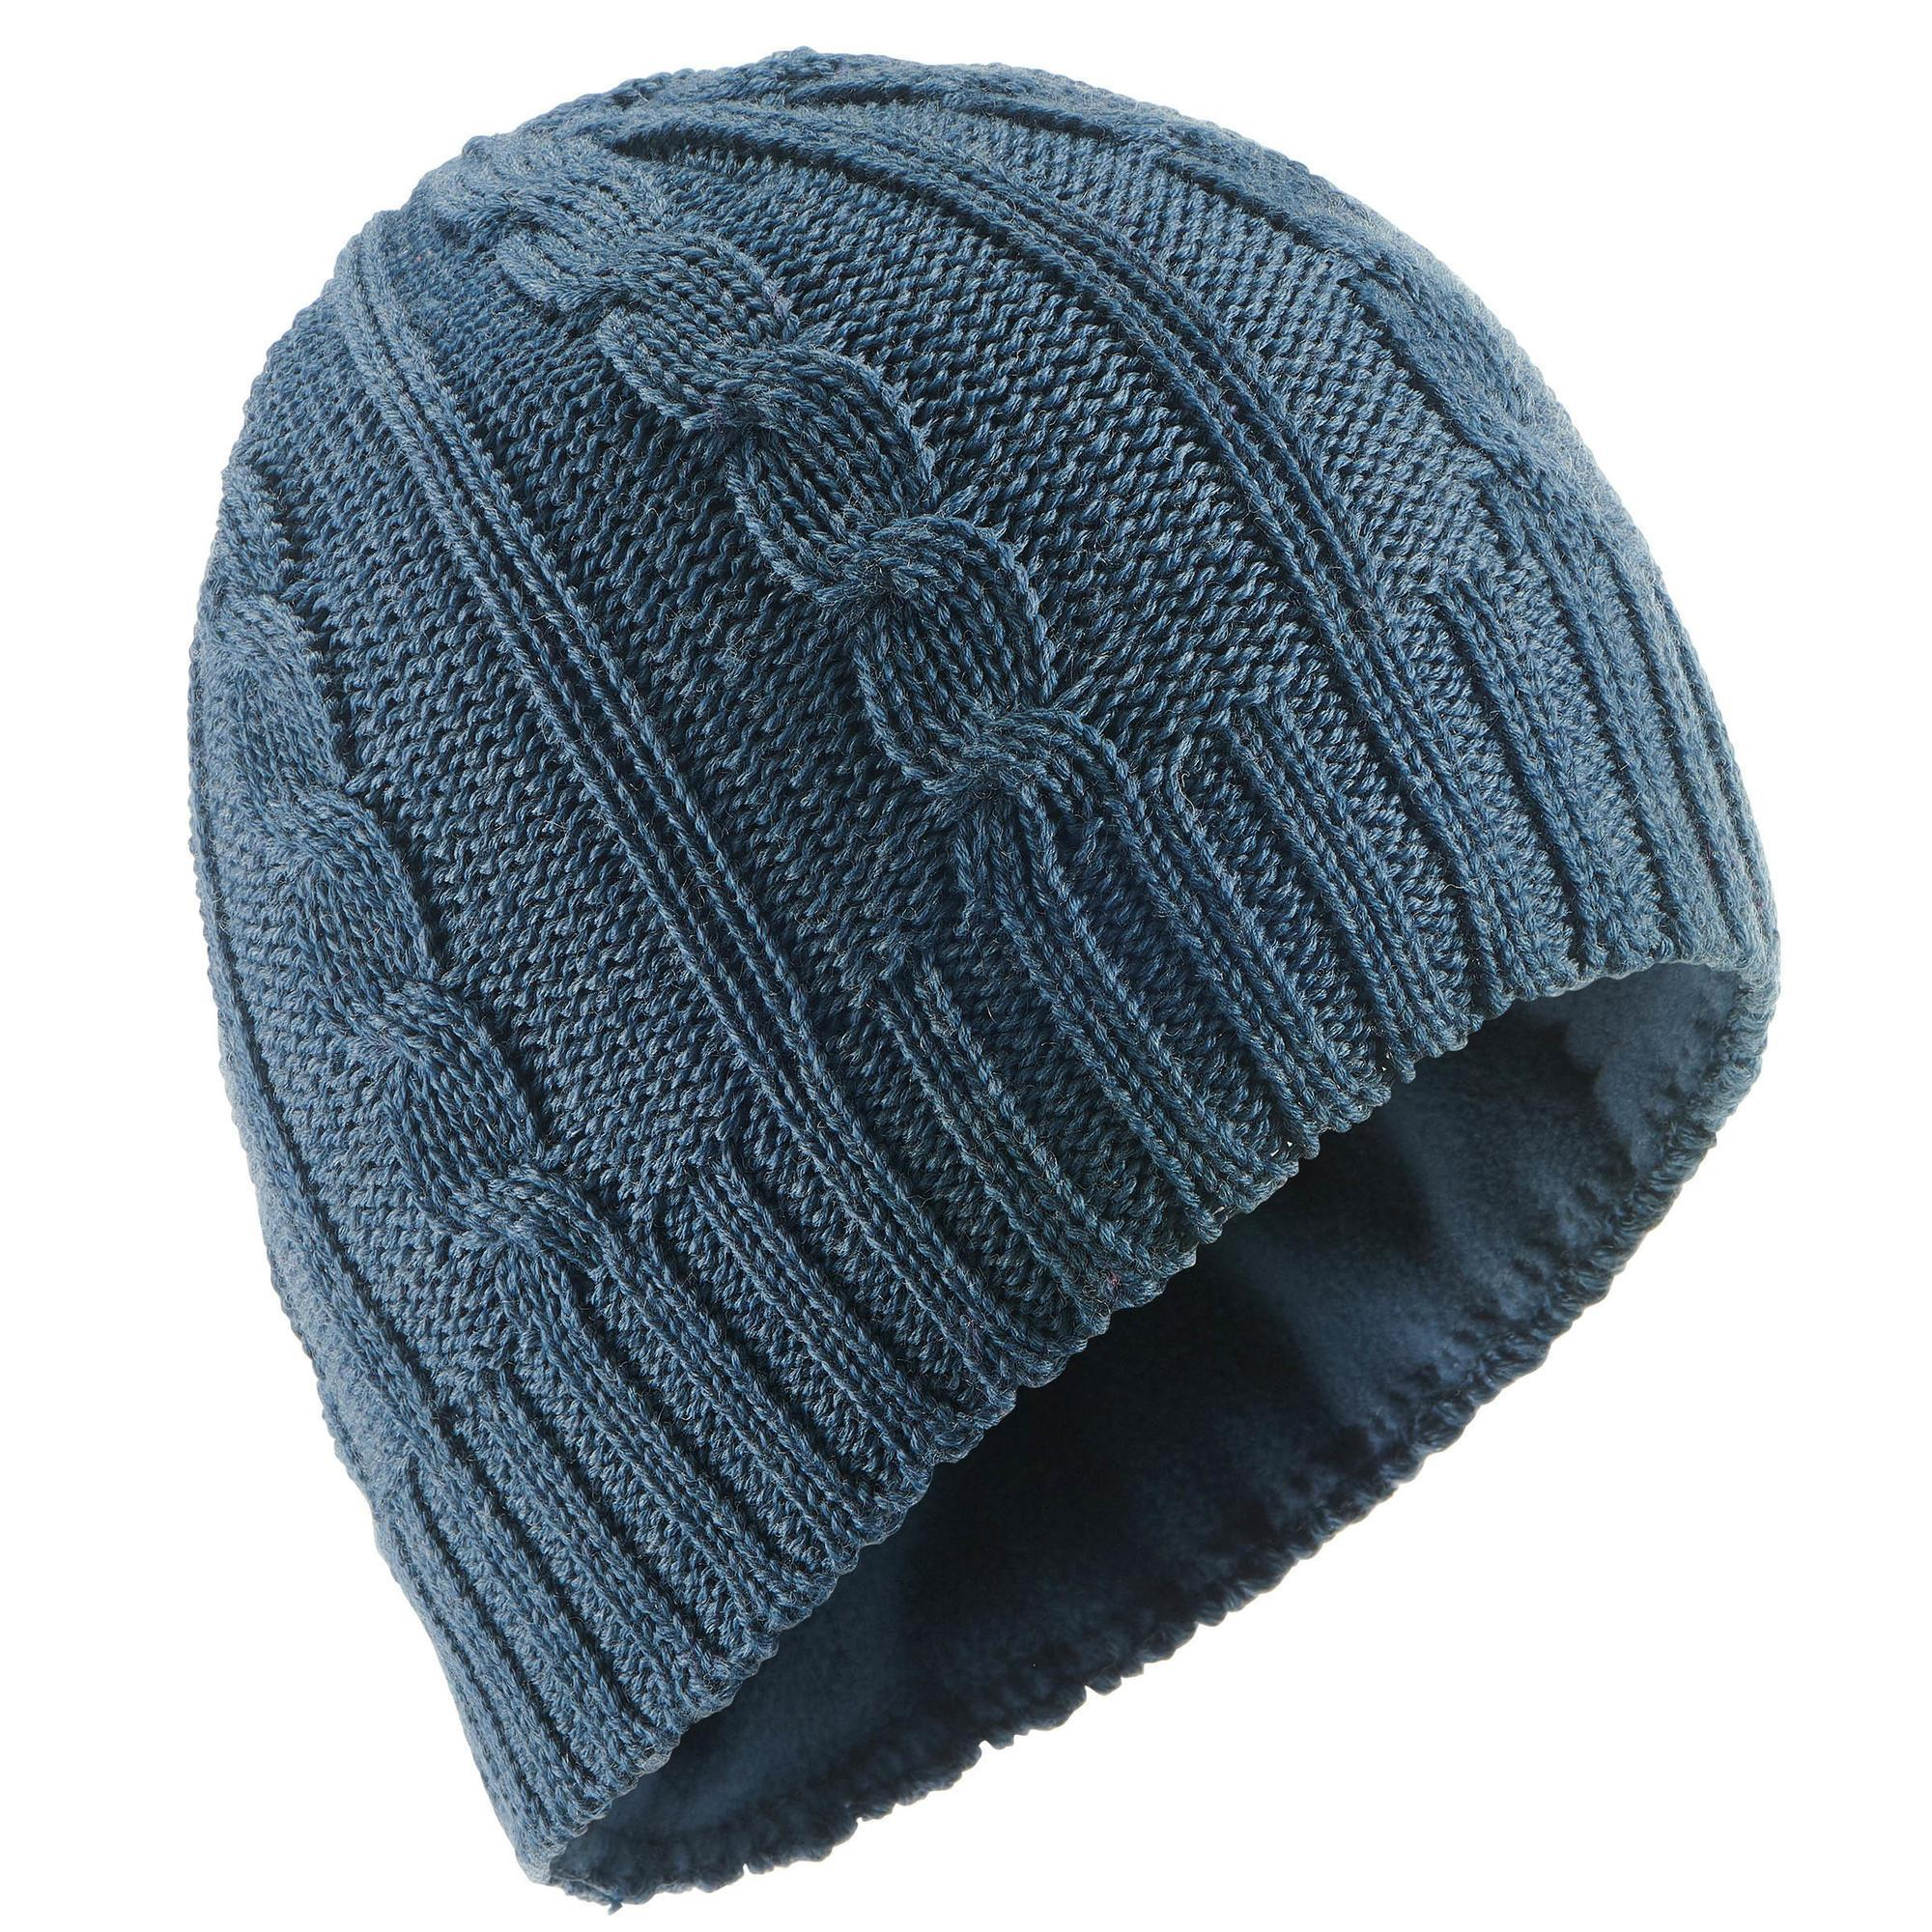 87c22a2660c Adult Cable Knit Ski Hat - Navy